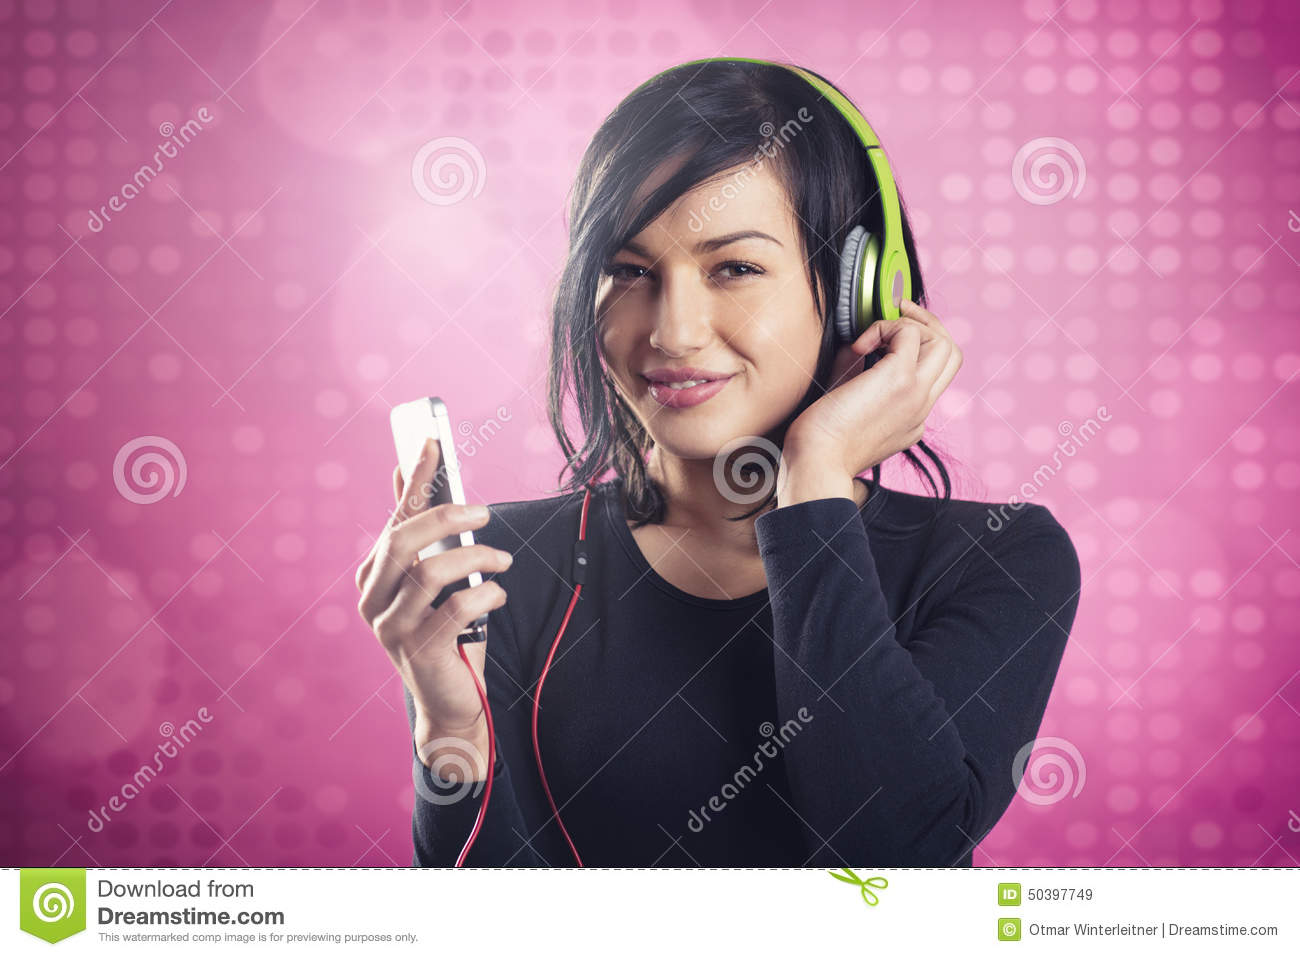 Image Result For Royalty Free Background Music Mp Download